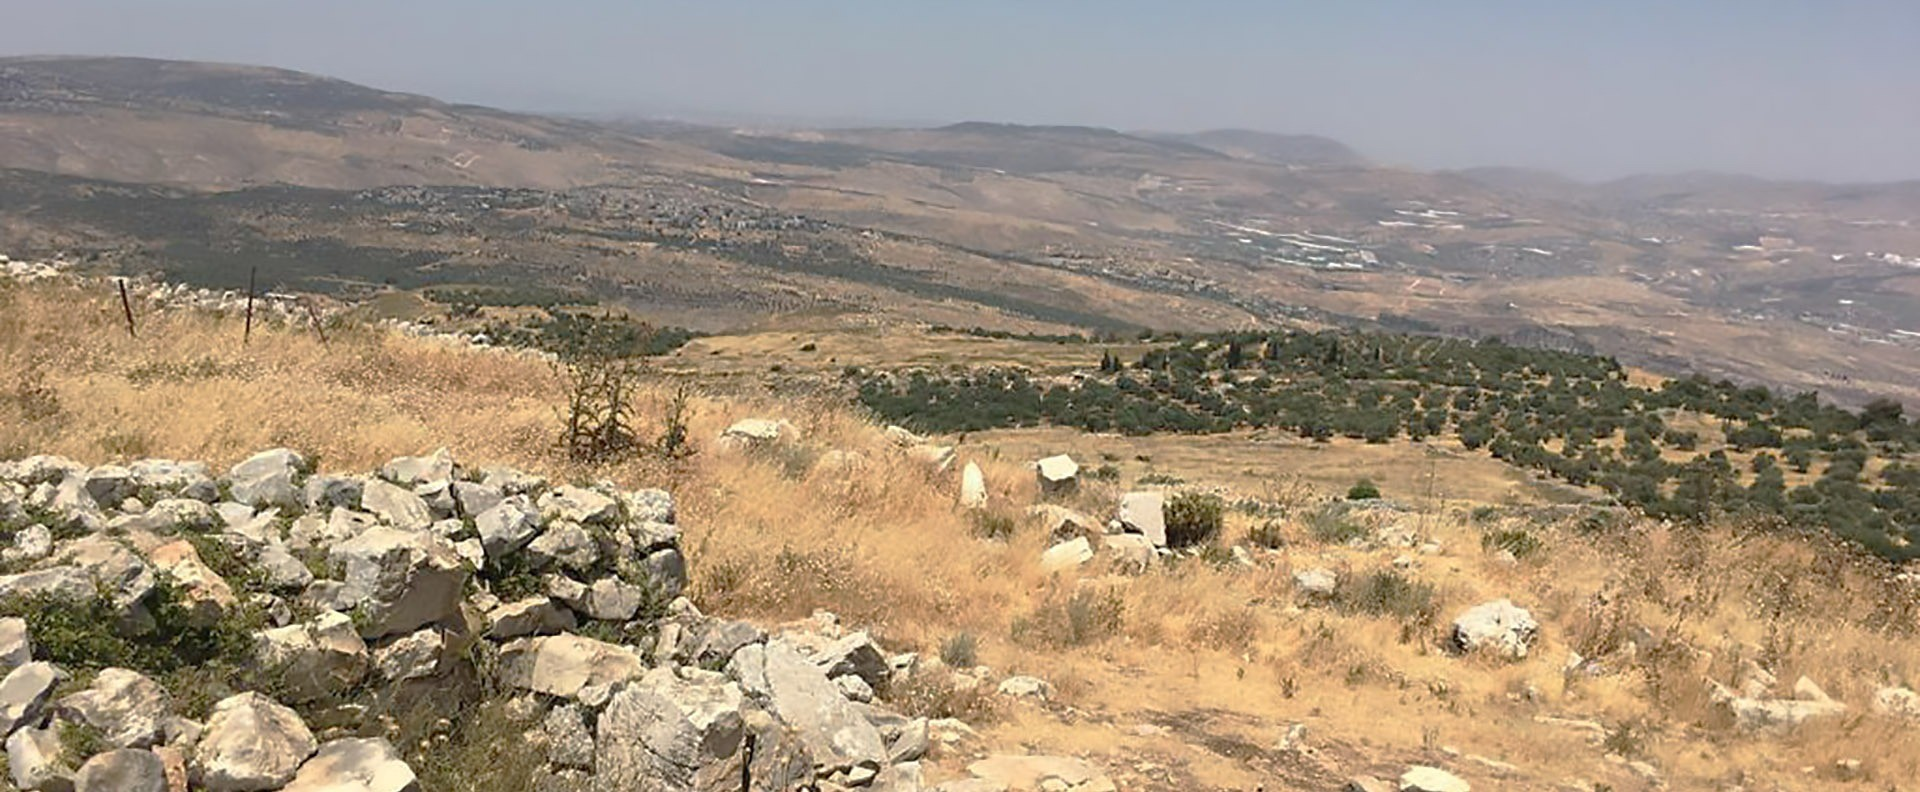 Visit Mount Ebal and Josephs Tomb